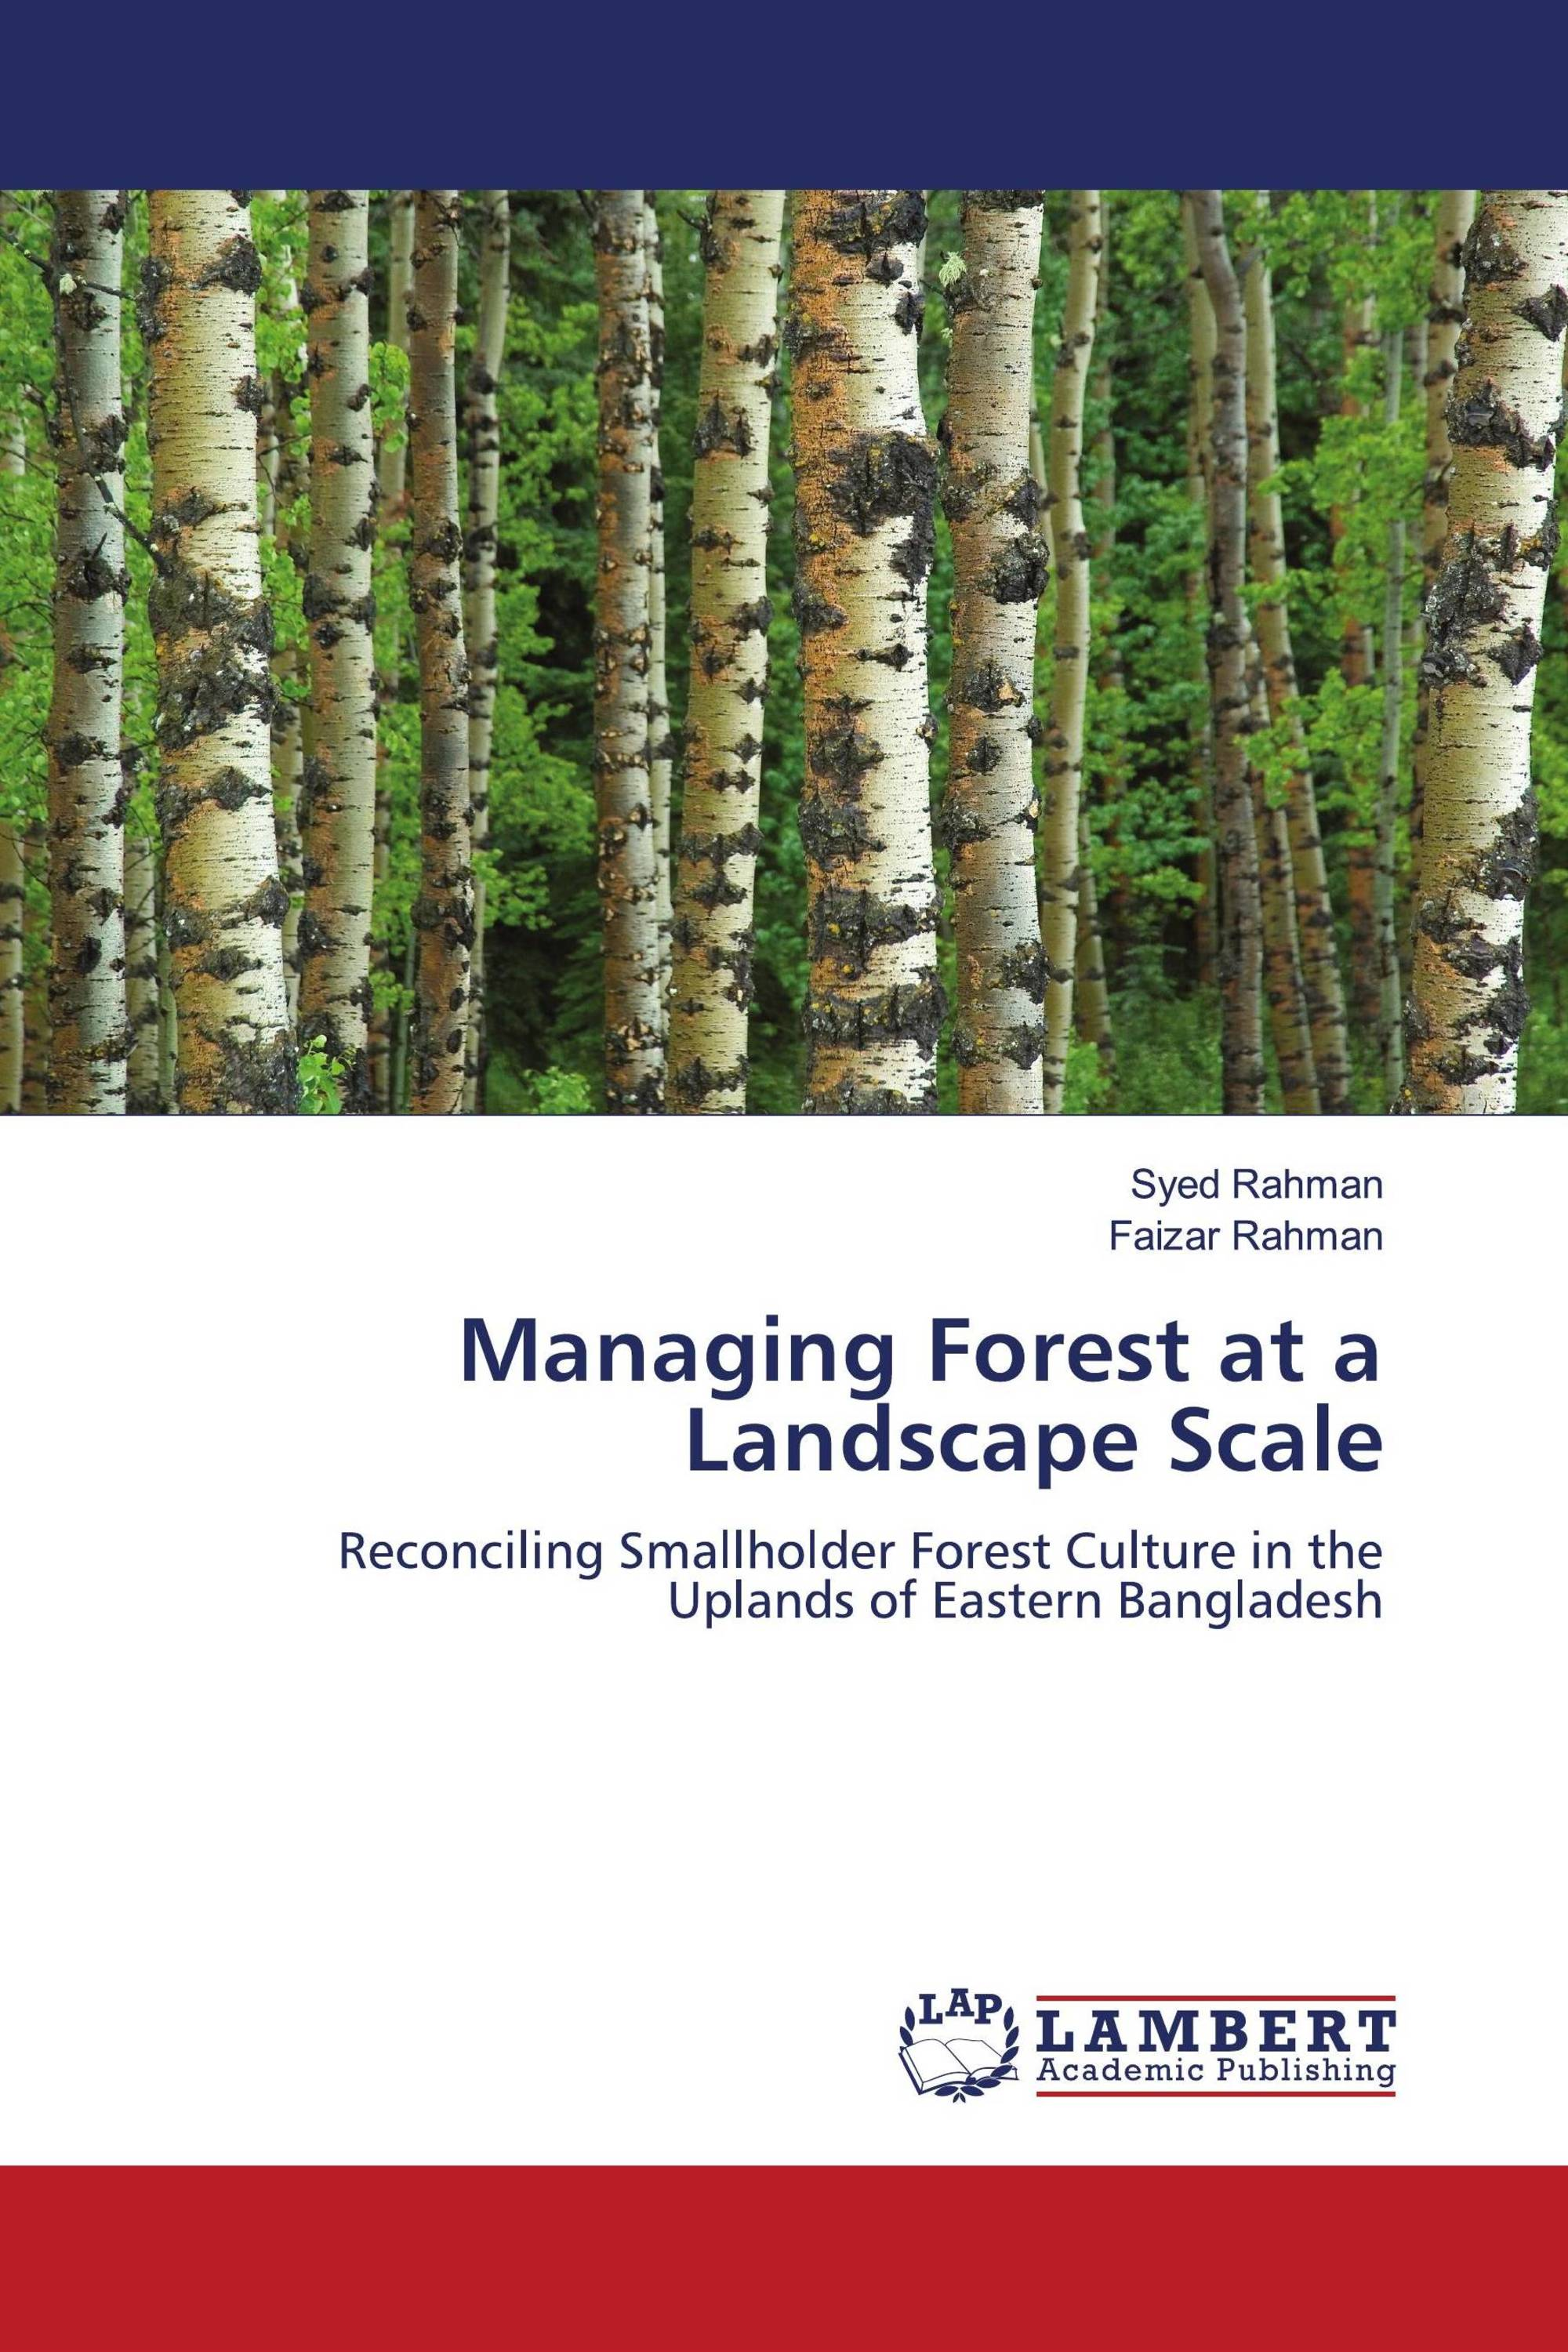 Managing Forest at a Landscape Scale